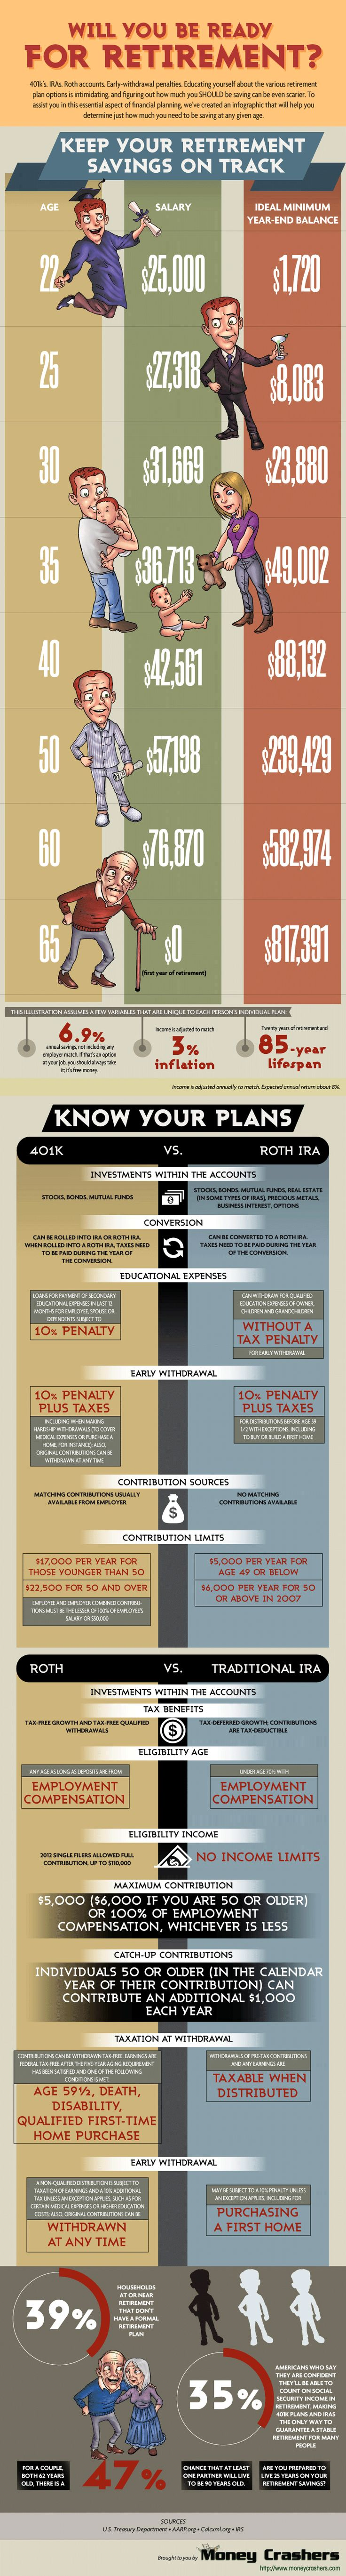 Finance Infographic - Will you be ready for retirement? - 401k, IRA, Roth. -Highland Financial Advisors, LLC does not endorse or approve of any form of third party communication, or re-distribution of this graphic or information that we post on Pinterest. Nor do we ourselves endorse this third party or their products/services.